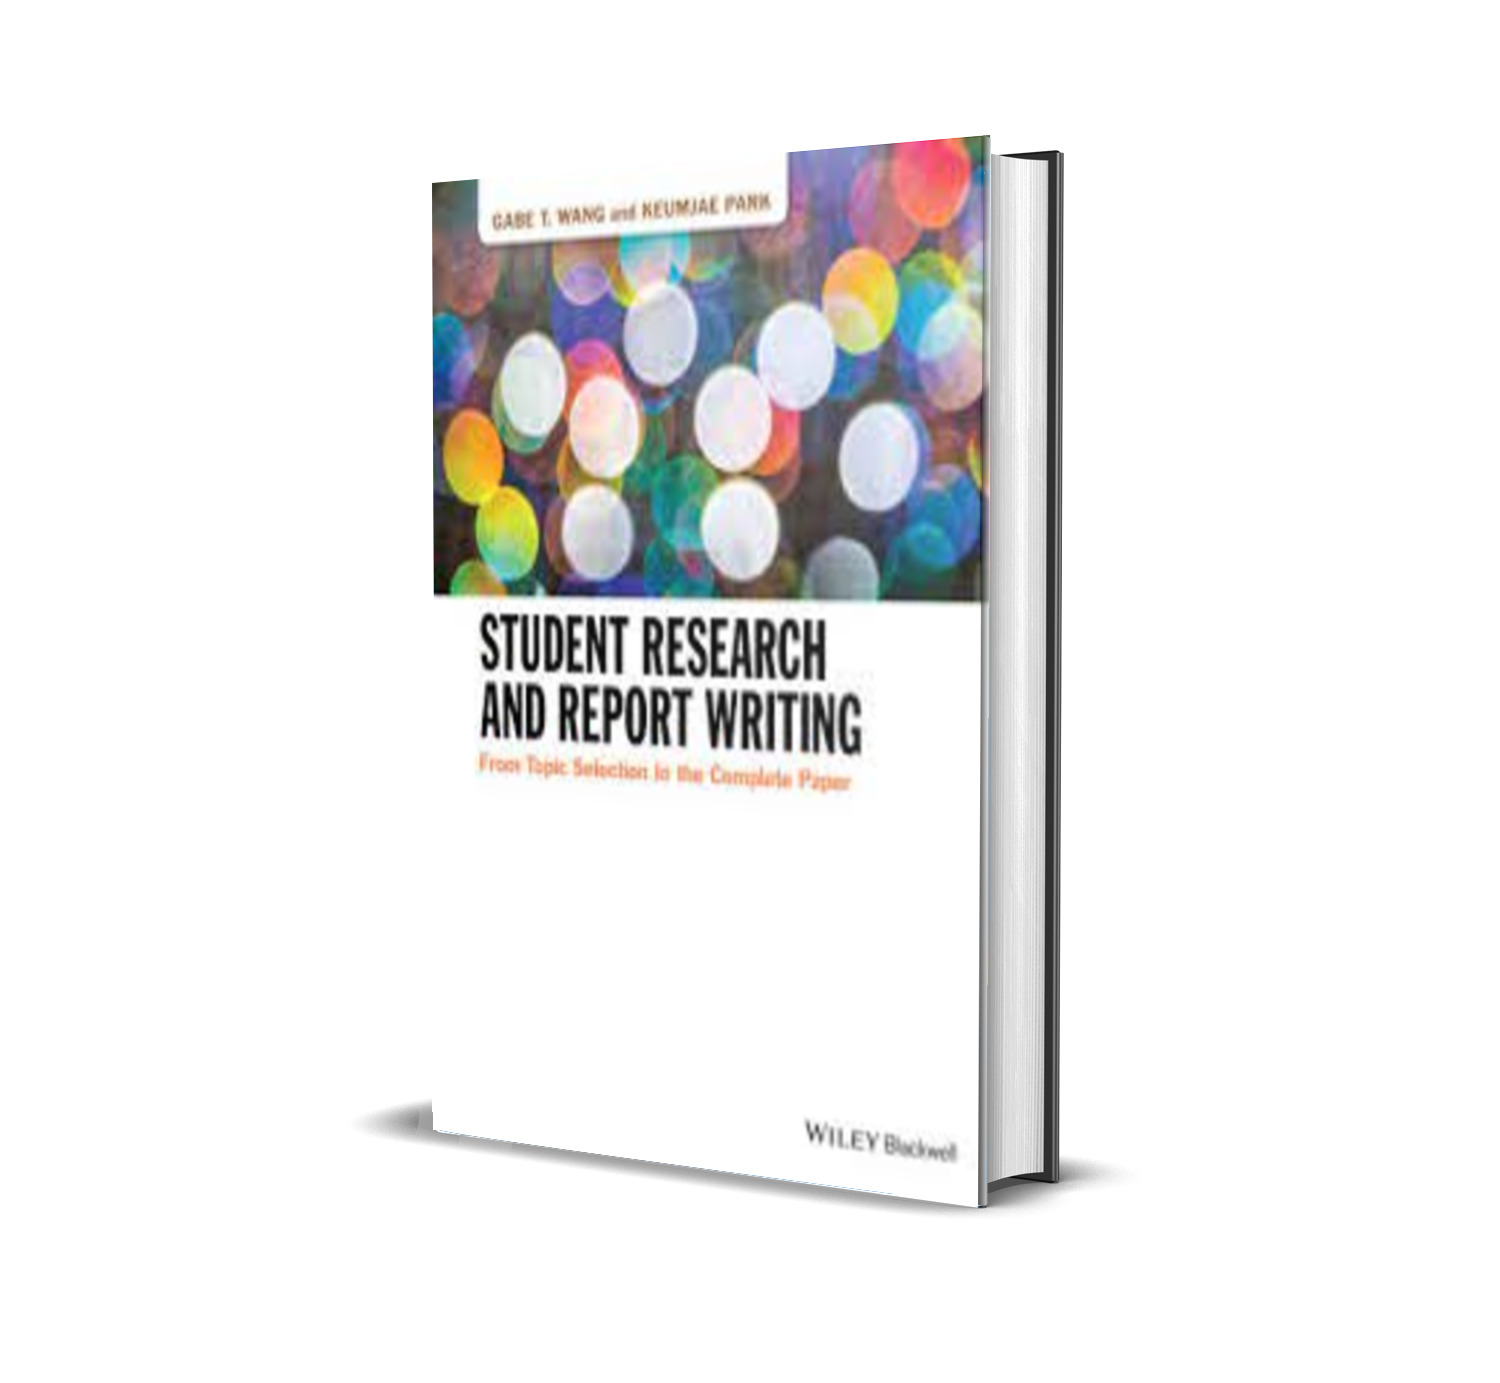 Student Research and Report Writing:From Topic Selection to the Complete Paper - Gabe T. Wang